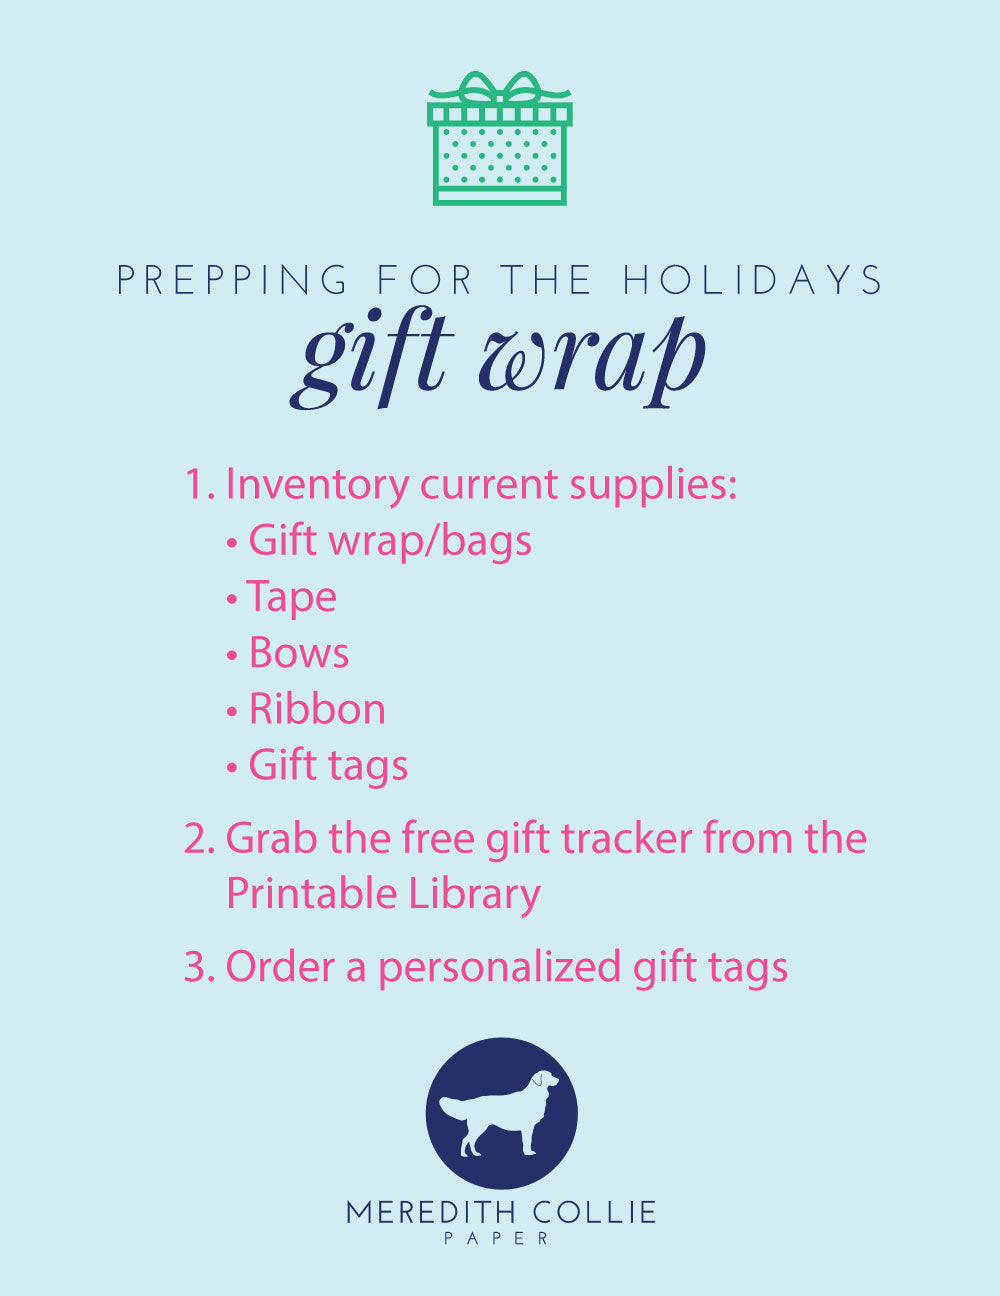 Prepping for the holidays, gift wrap check list, Meredith Collie Paper